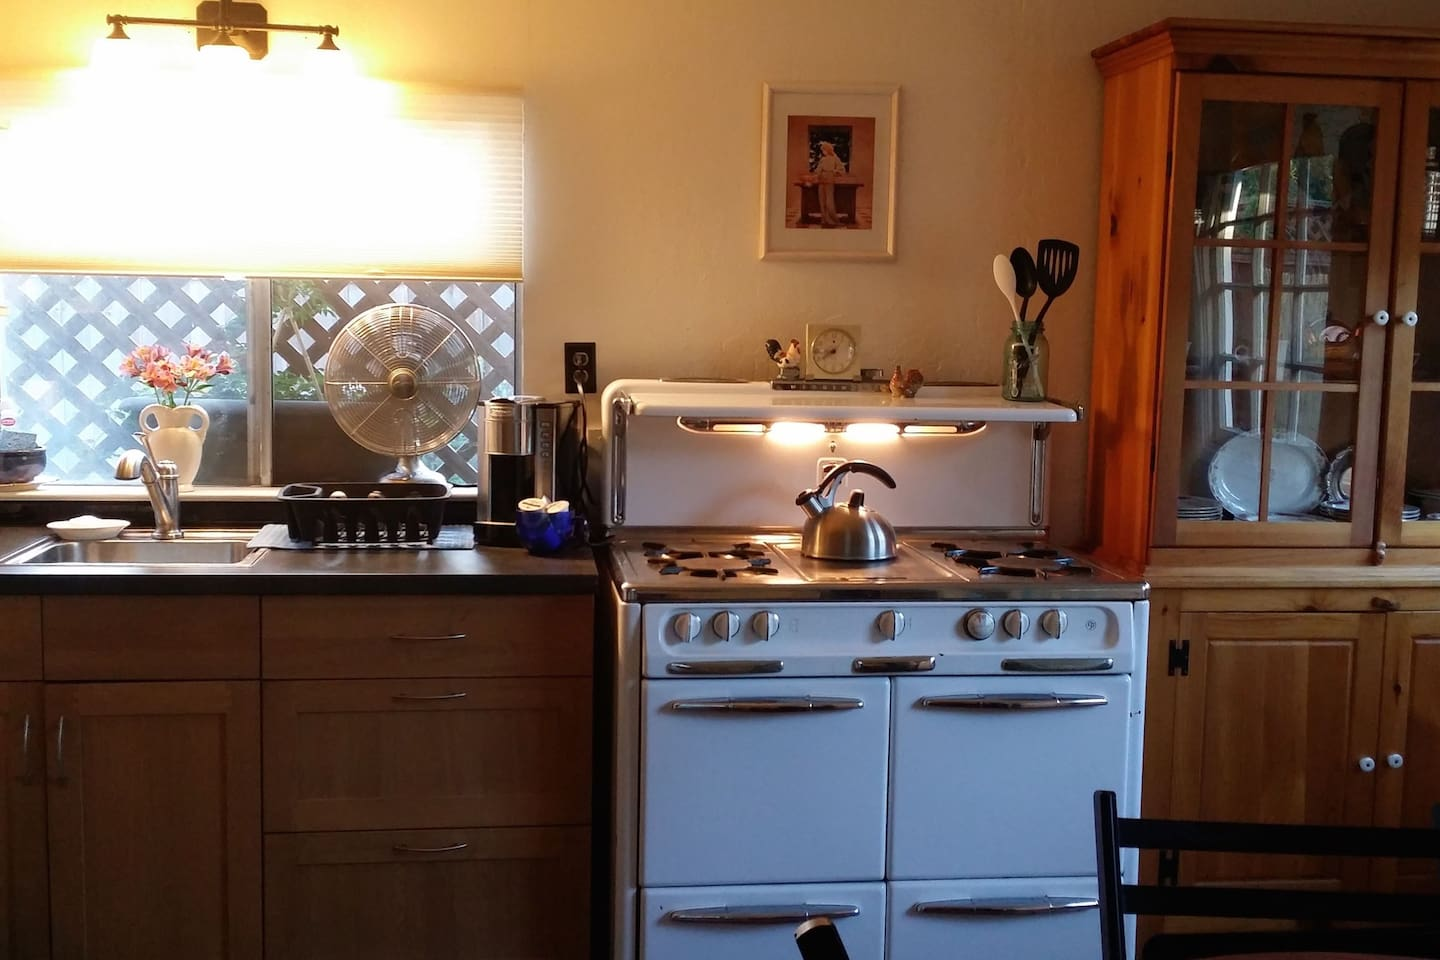 Full Kitchenette - the vintage Wedgewood Stove was my Mother's and the one that I grew up with!